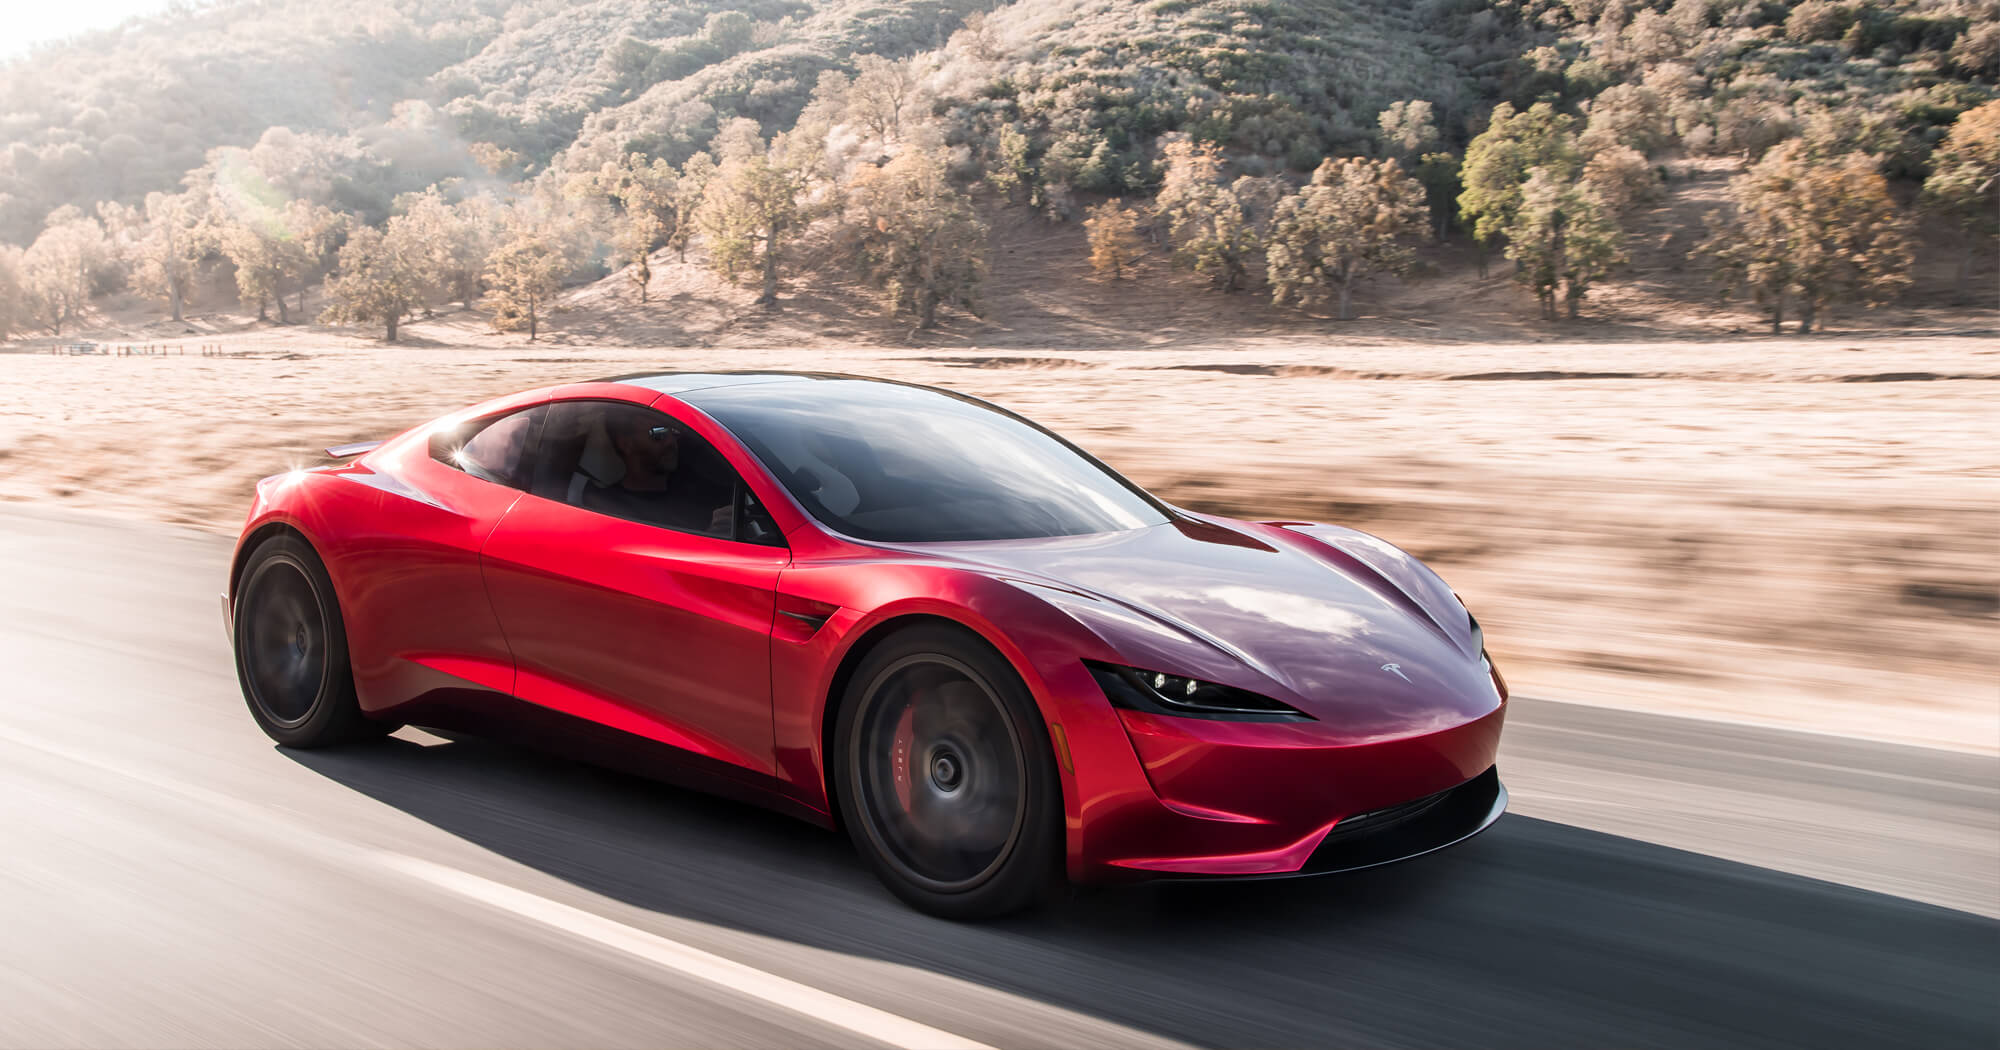 Tesla Roadster Fastest Production Car in the World